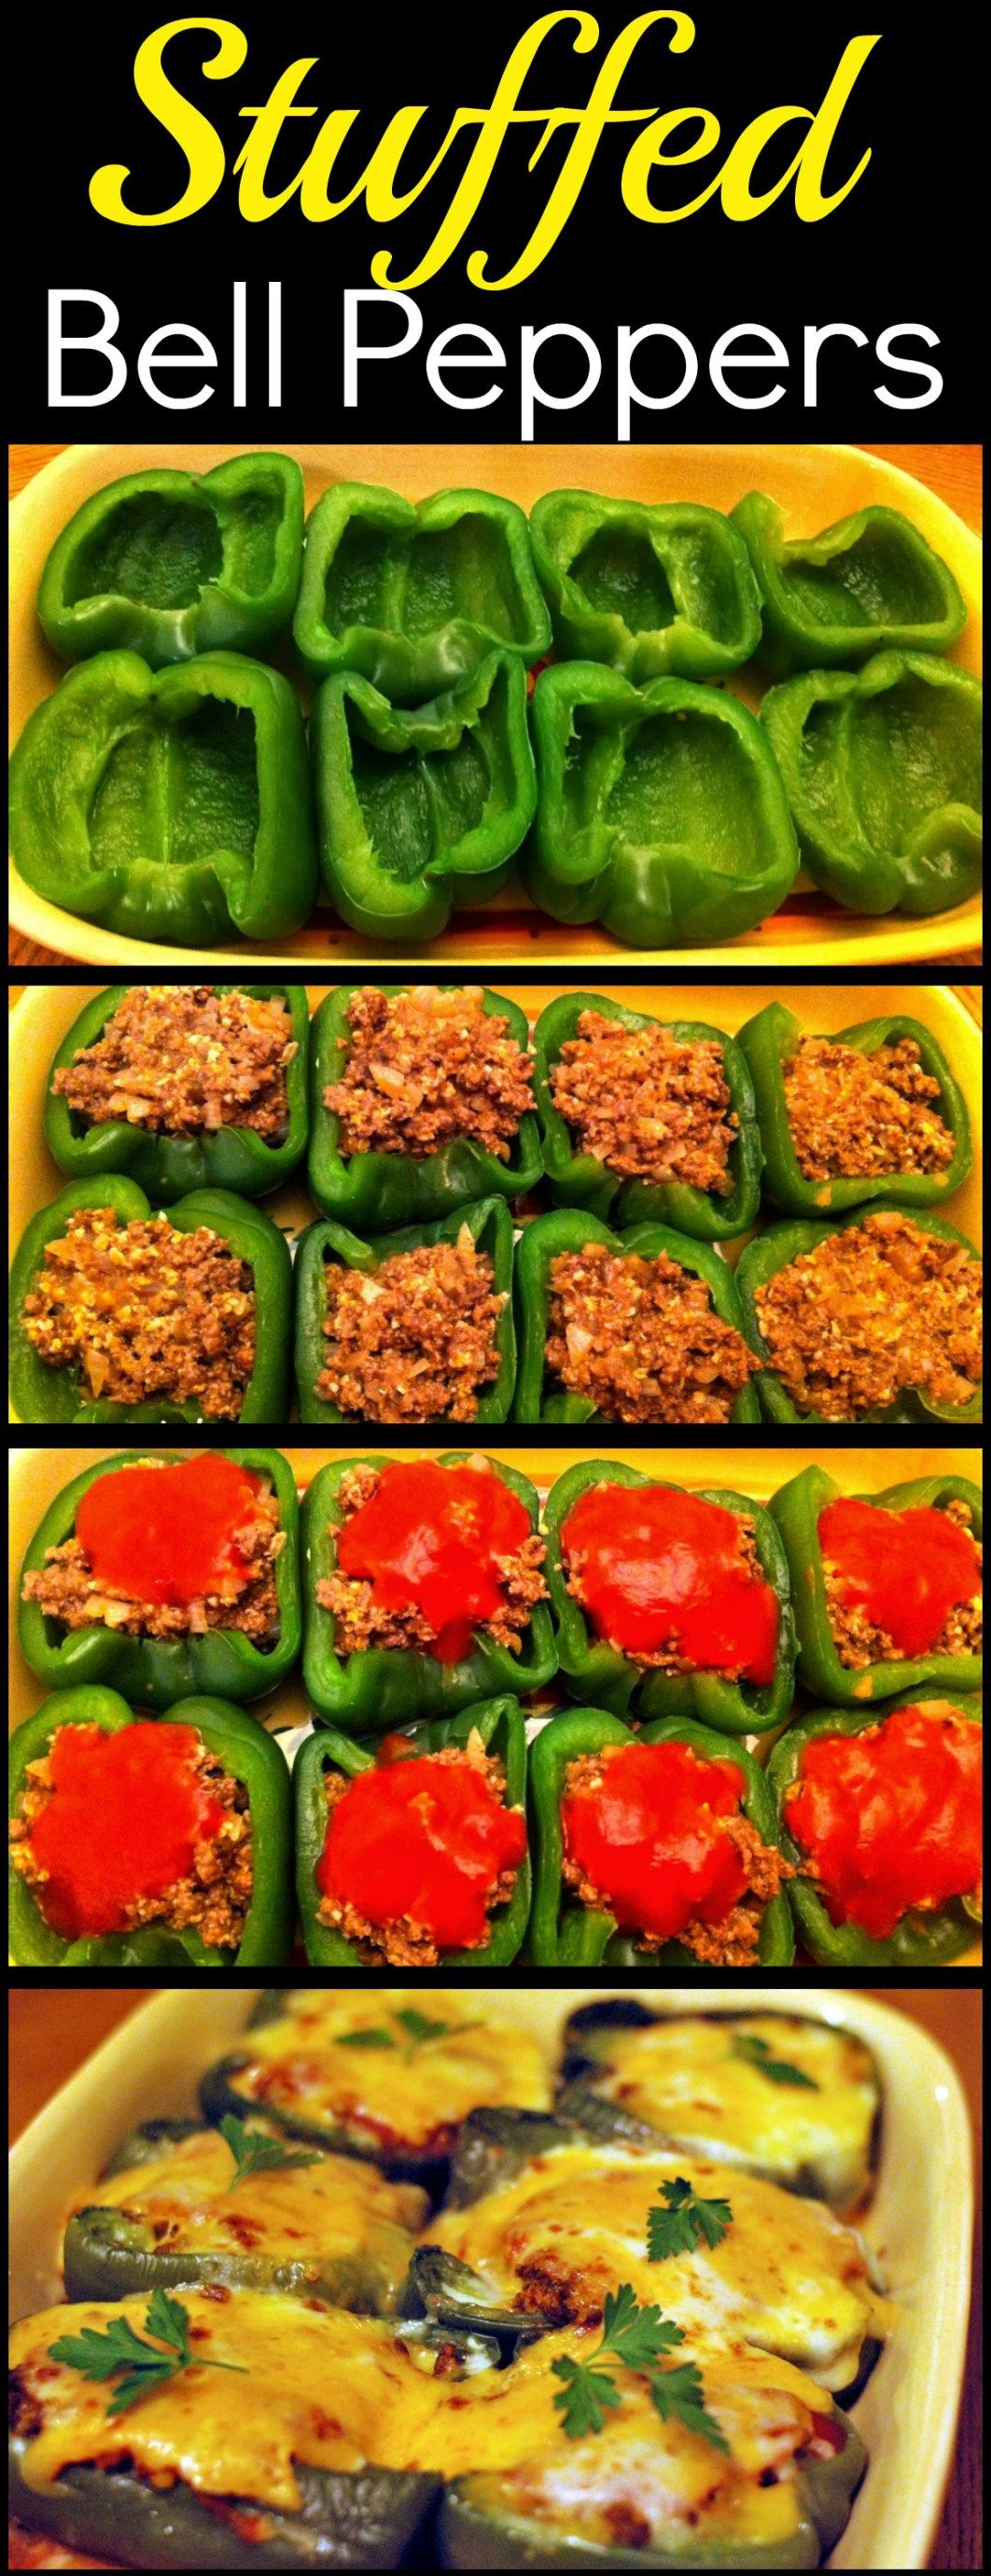 Stuffed Bell Peppers | Aunt Bee's Recipes #stuffedbellpeppers